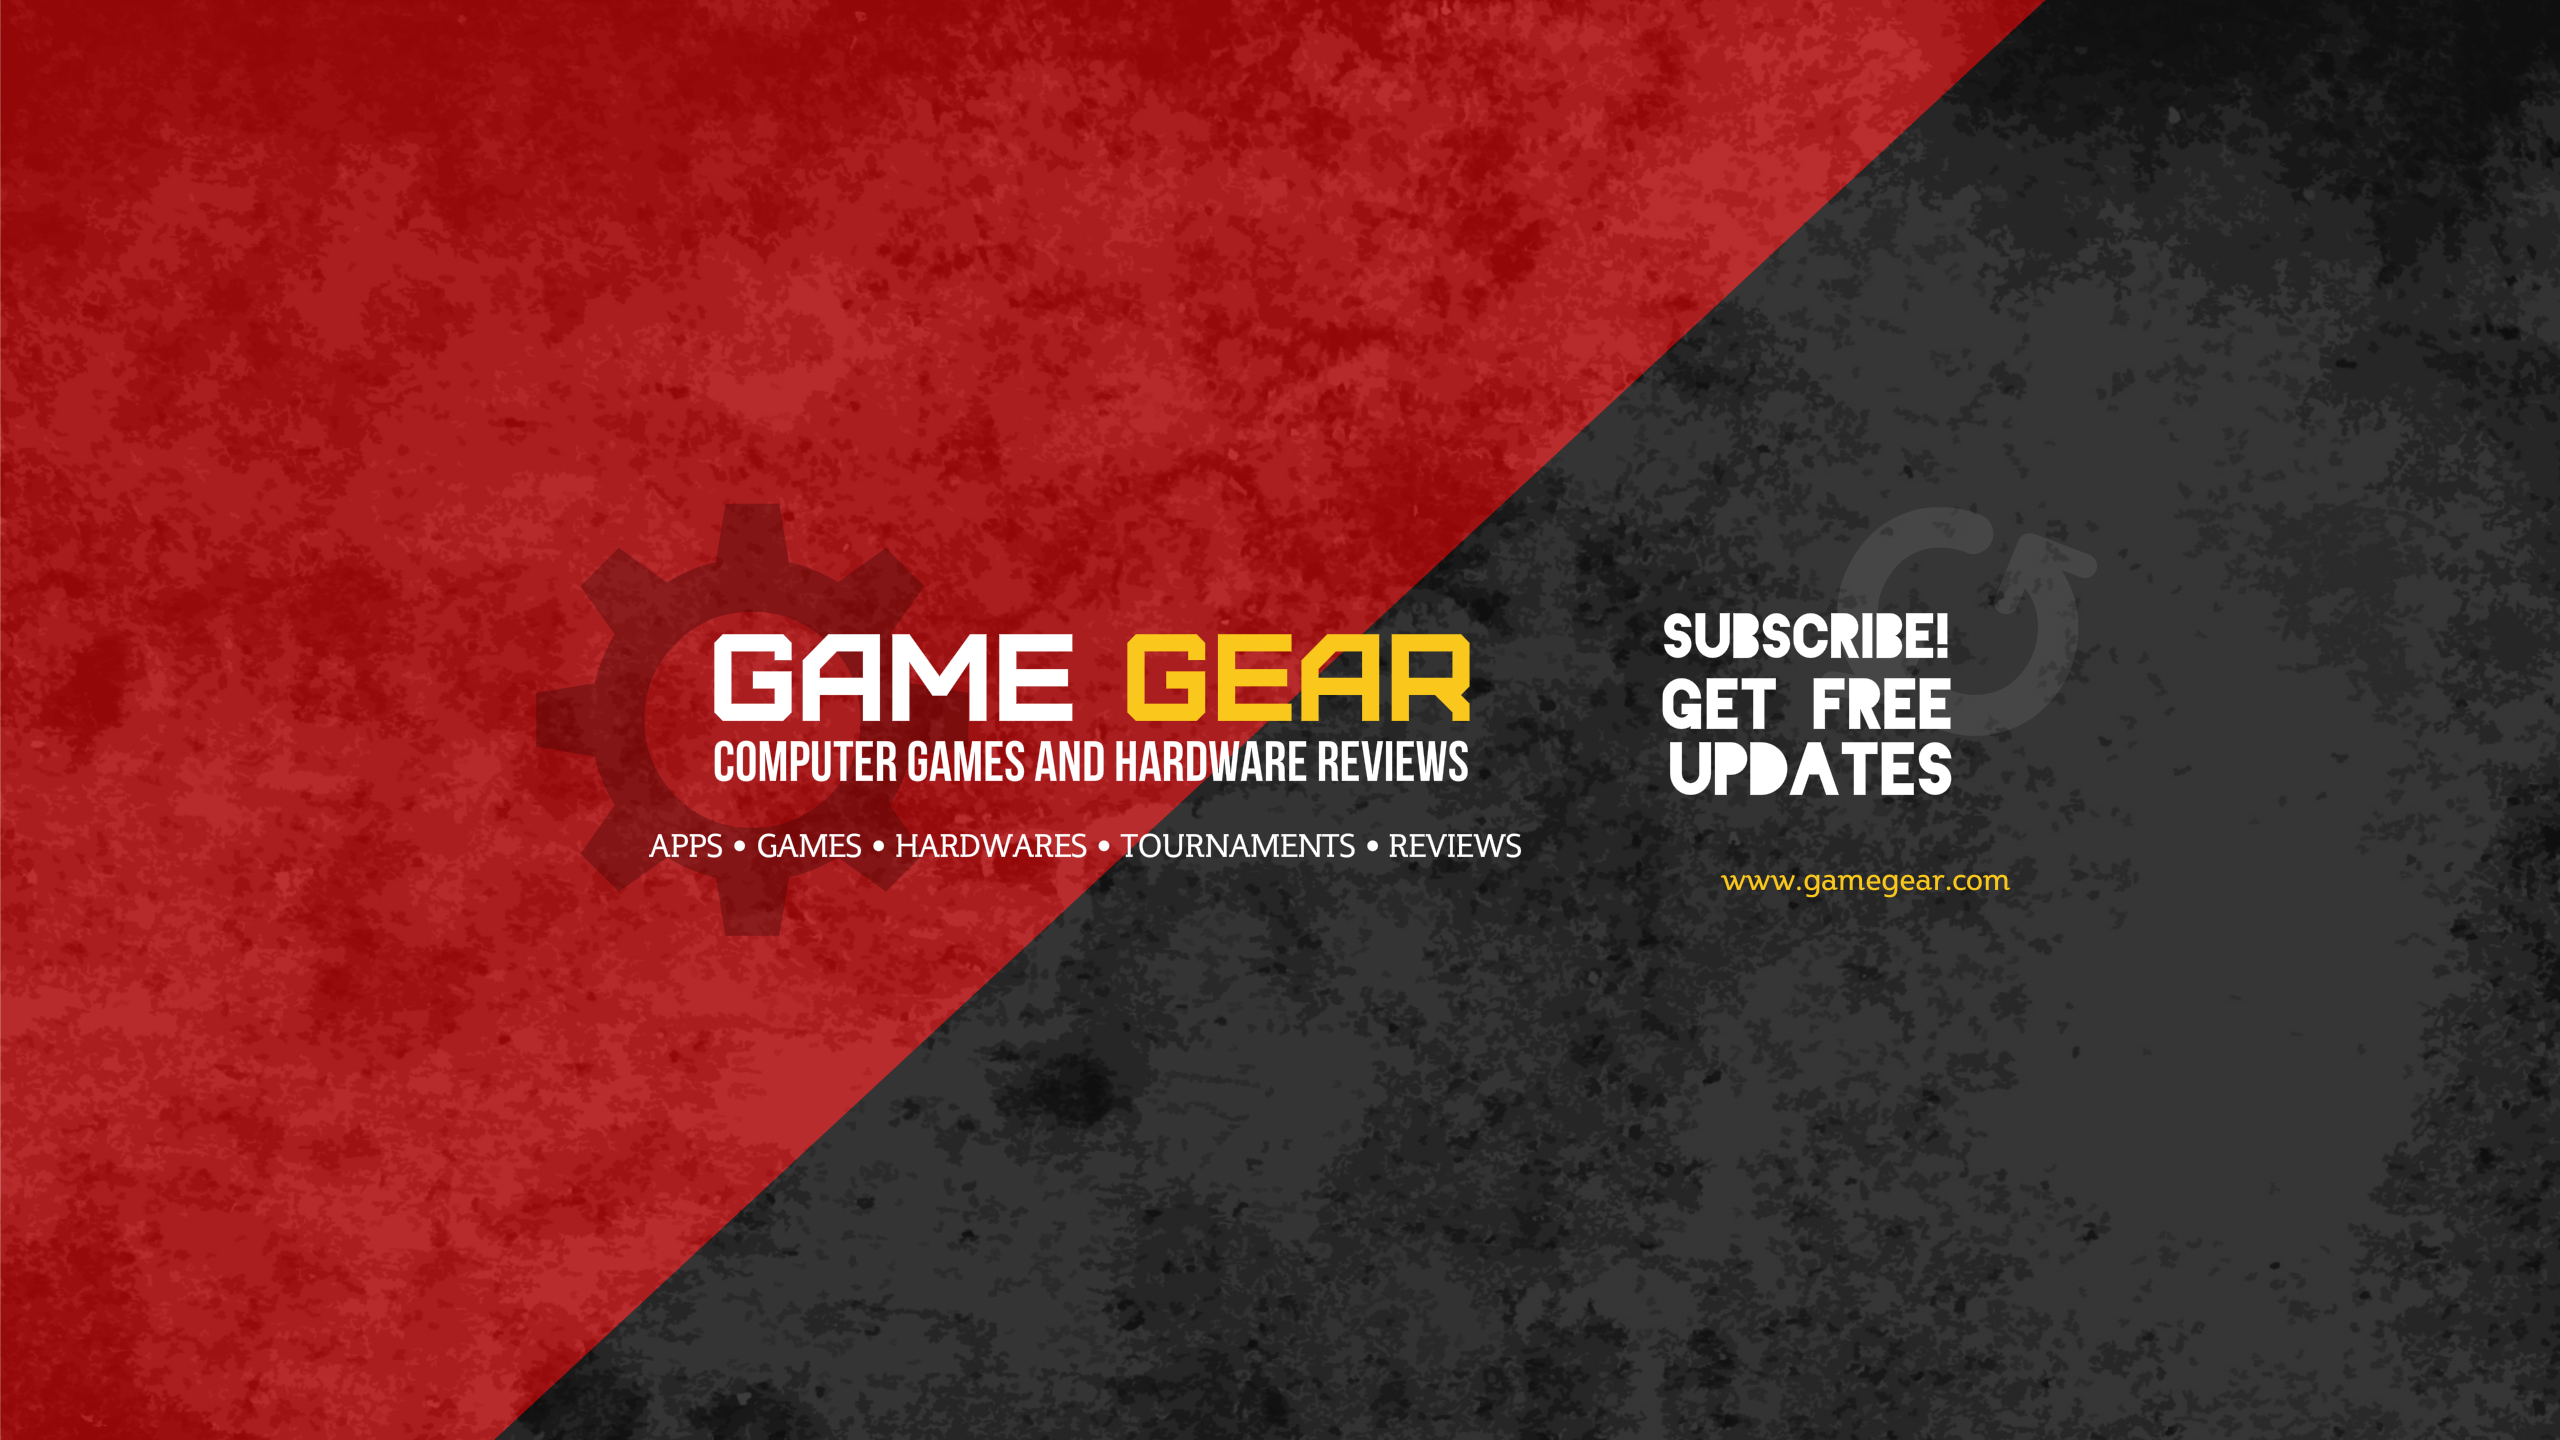 Template For Youtube Channel Art Game Gear Theme Cool Designs